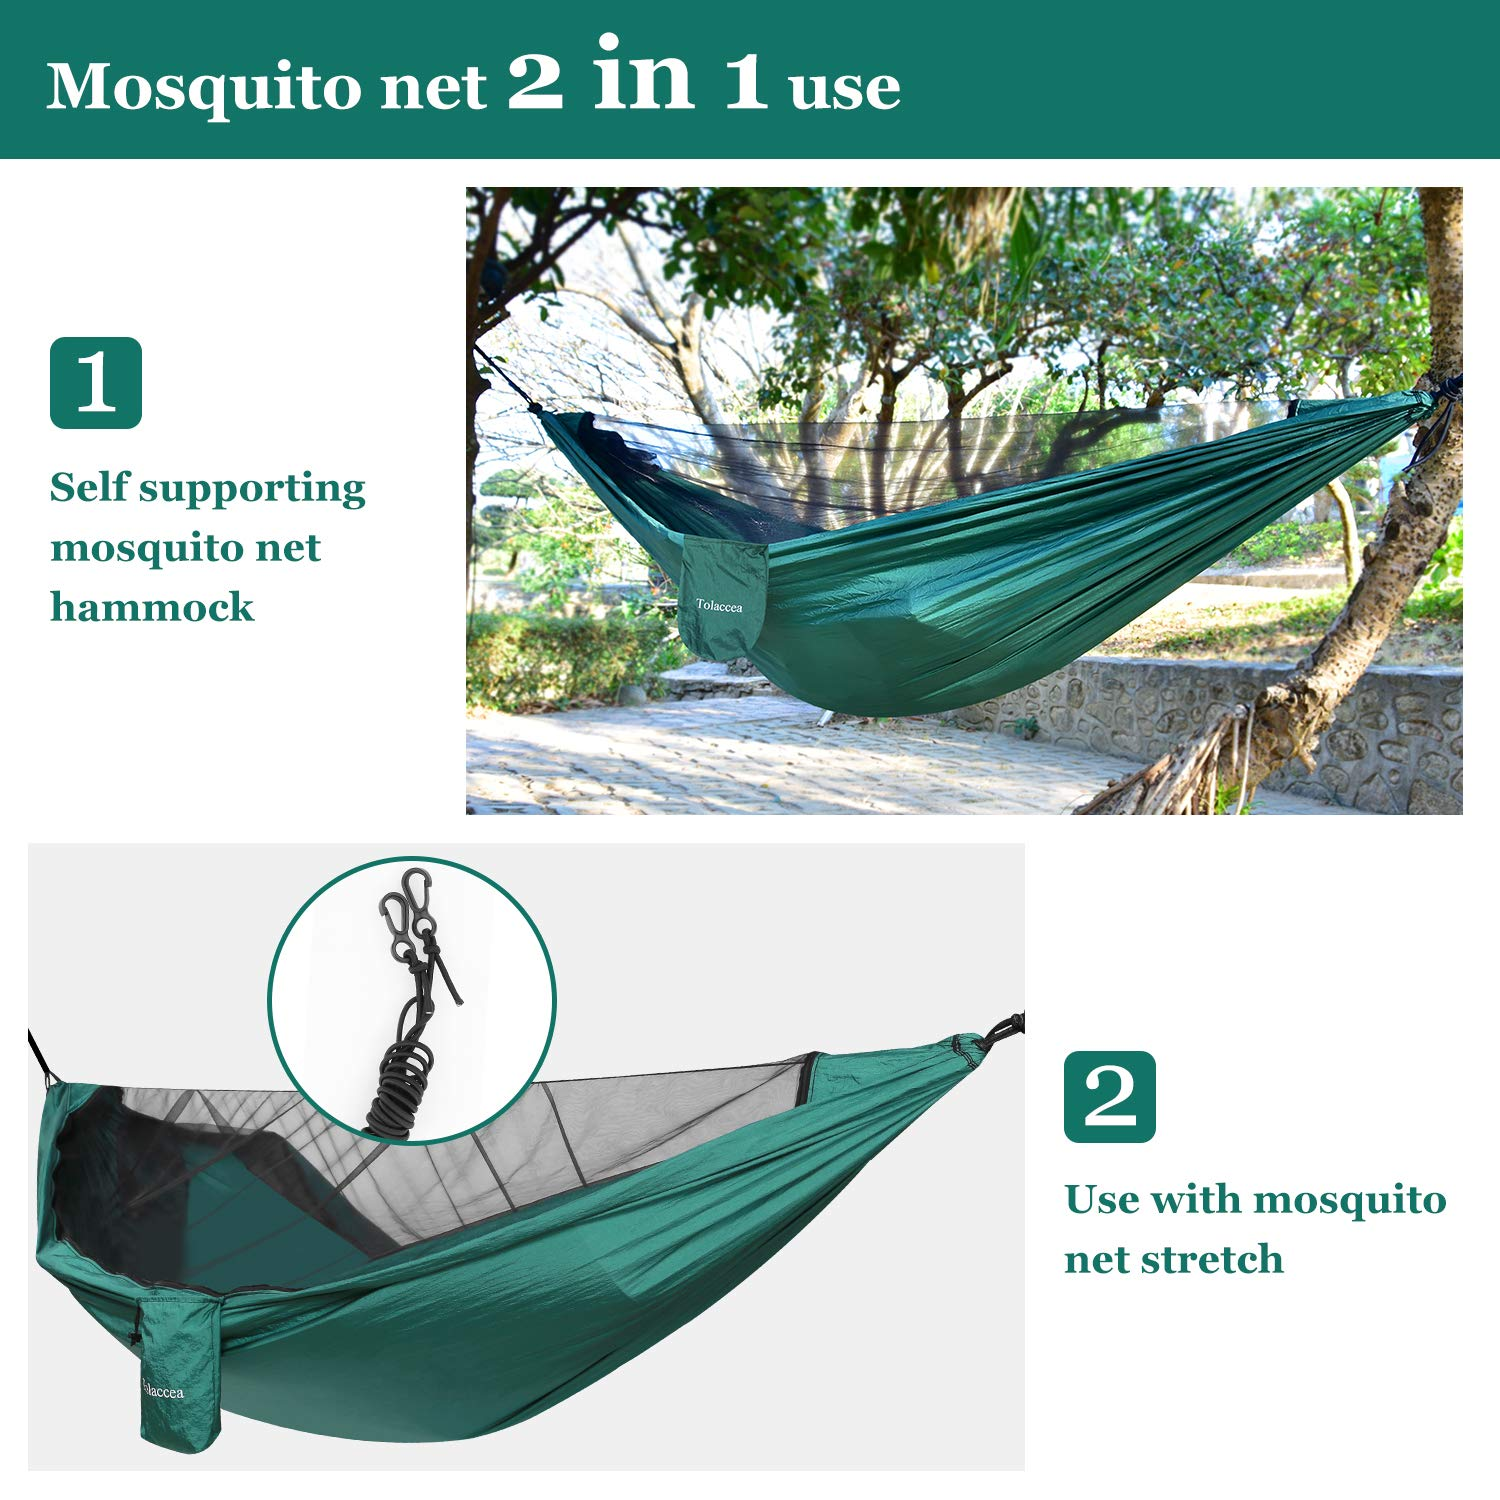 Tolaccea Camping Hammock with Self-Supporting Mosquito Net Lightweight Hammock Indoor Outdoor Double & Single Hammock for Backpacking, Travel, Beach, Yard, Hiking, Adventures.